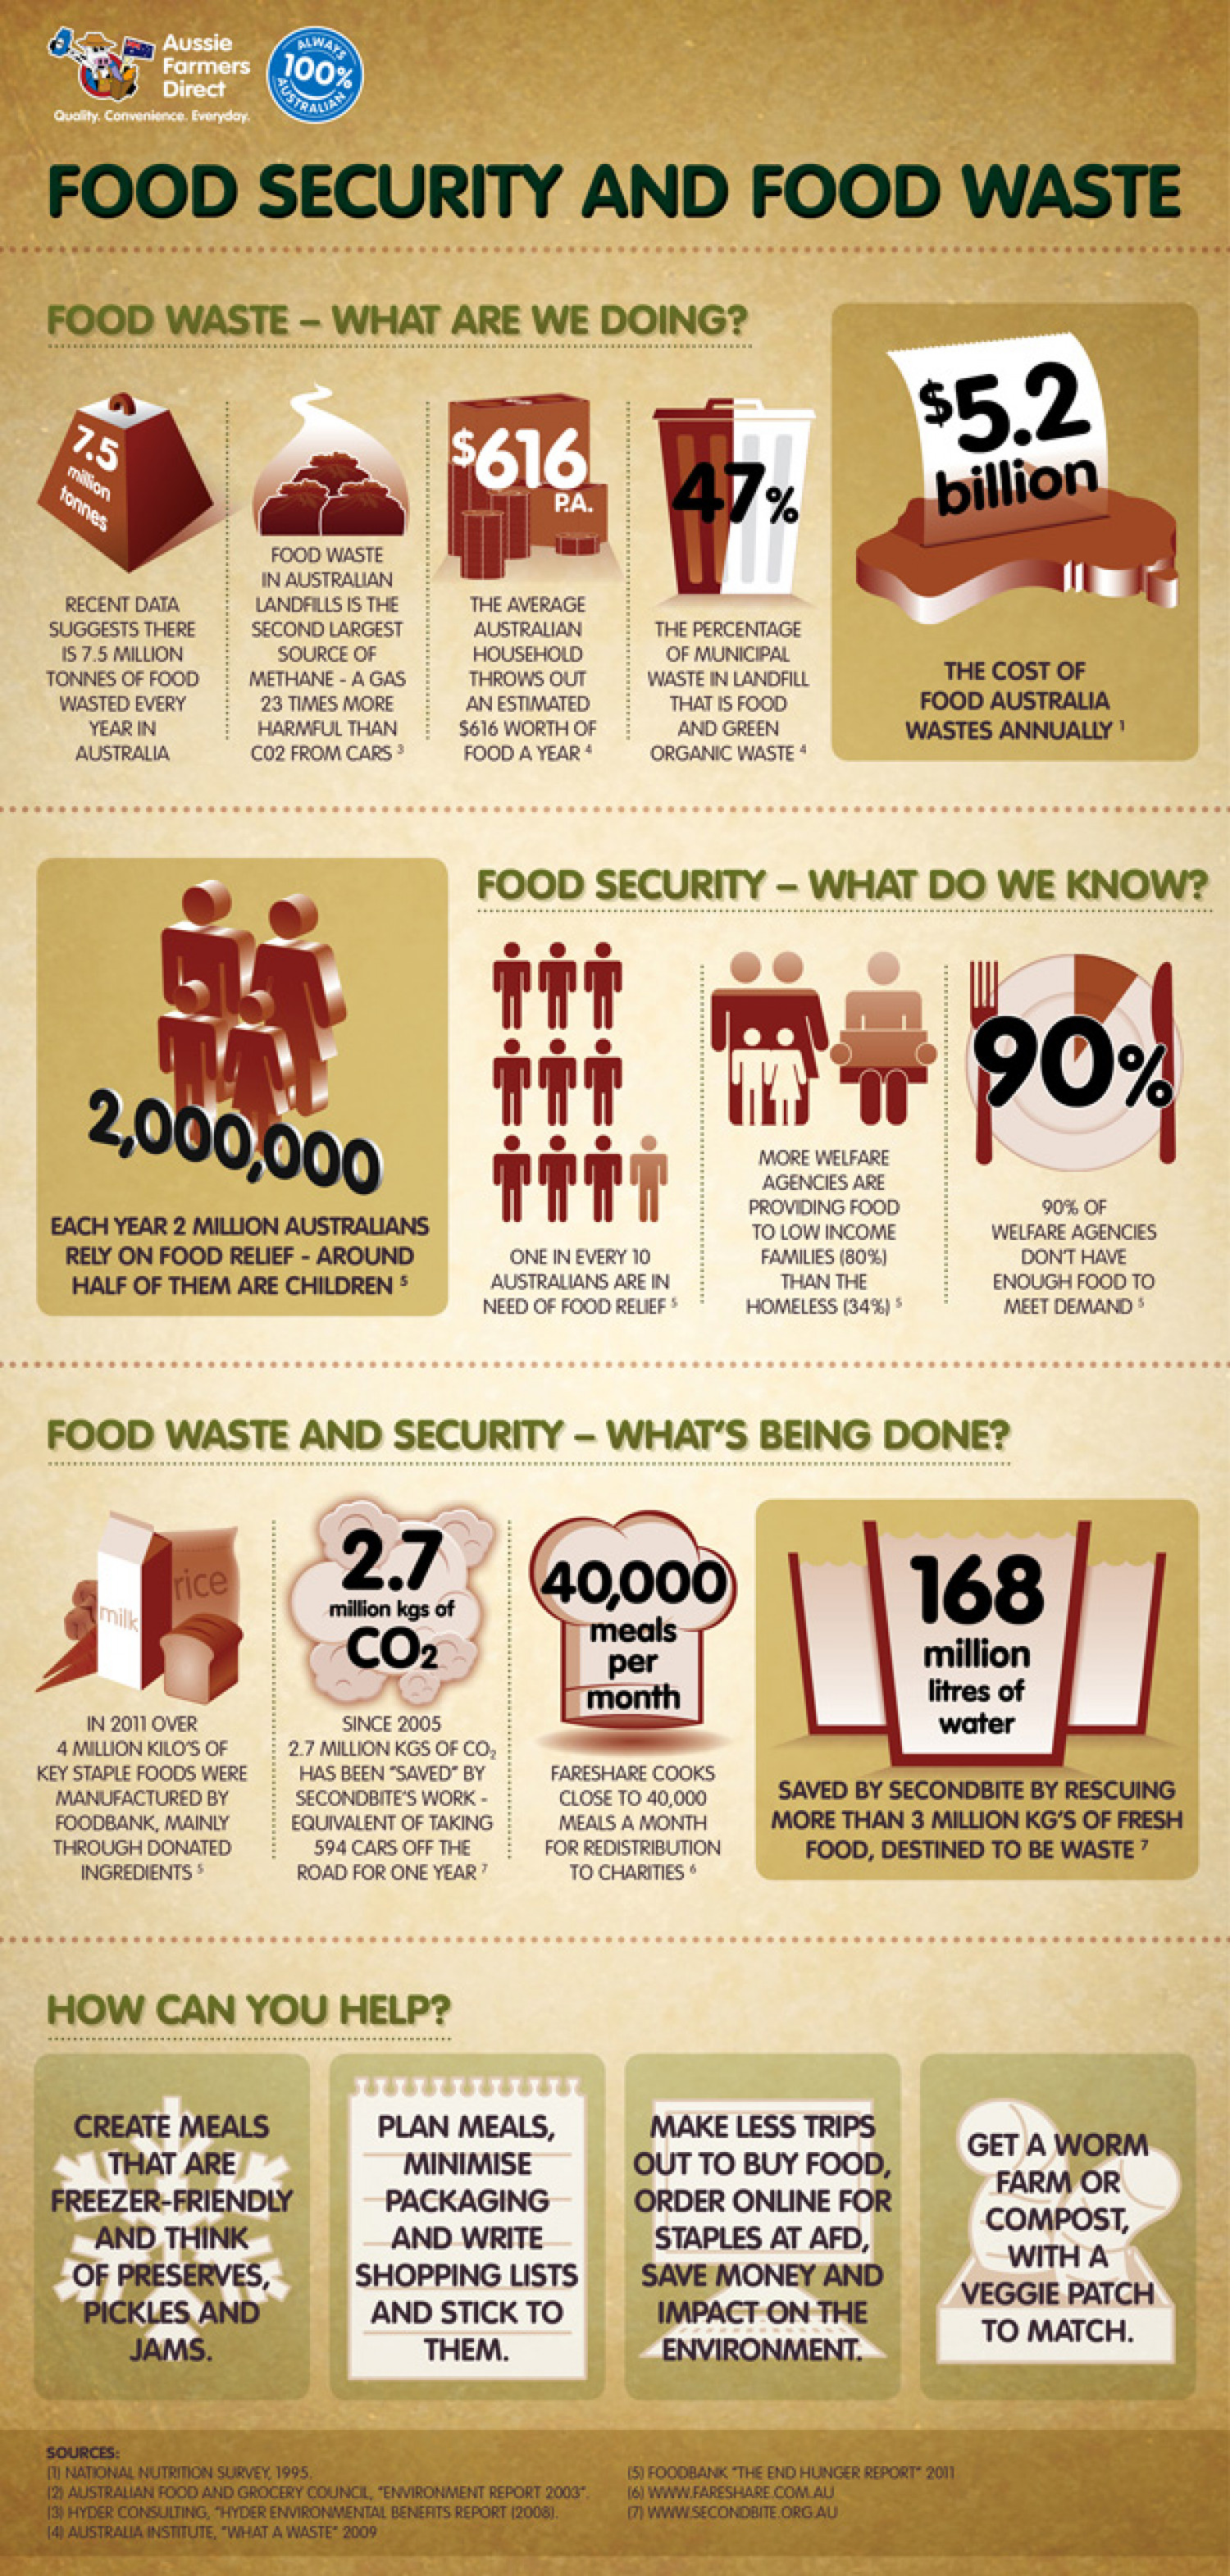 Food Security and Food Waste Infographic